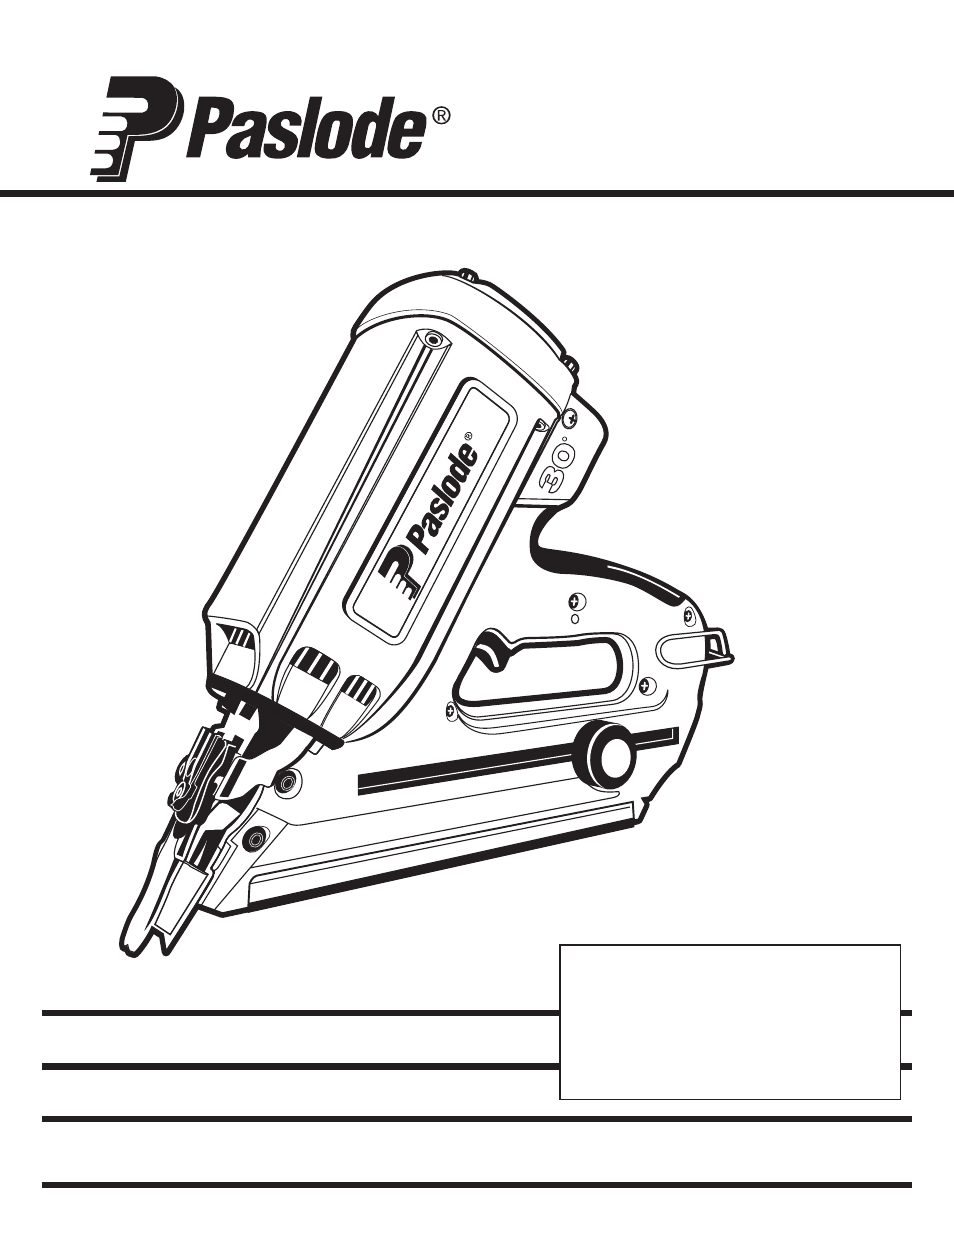 Paslode IMCT Cordless Framing Nailer User Manual | 20 pages | Also ...